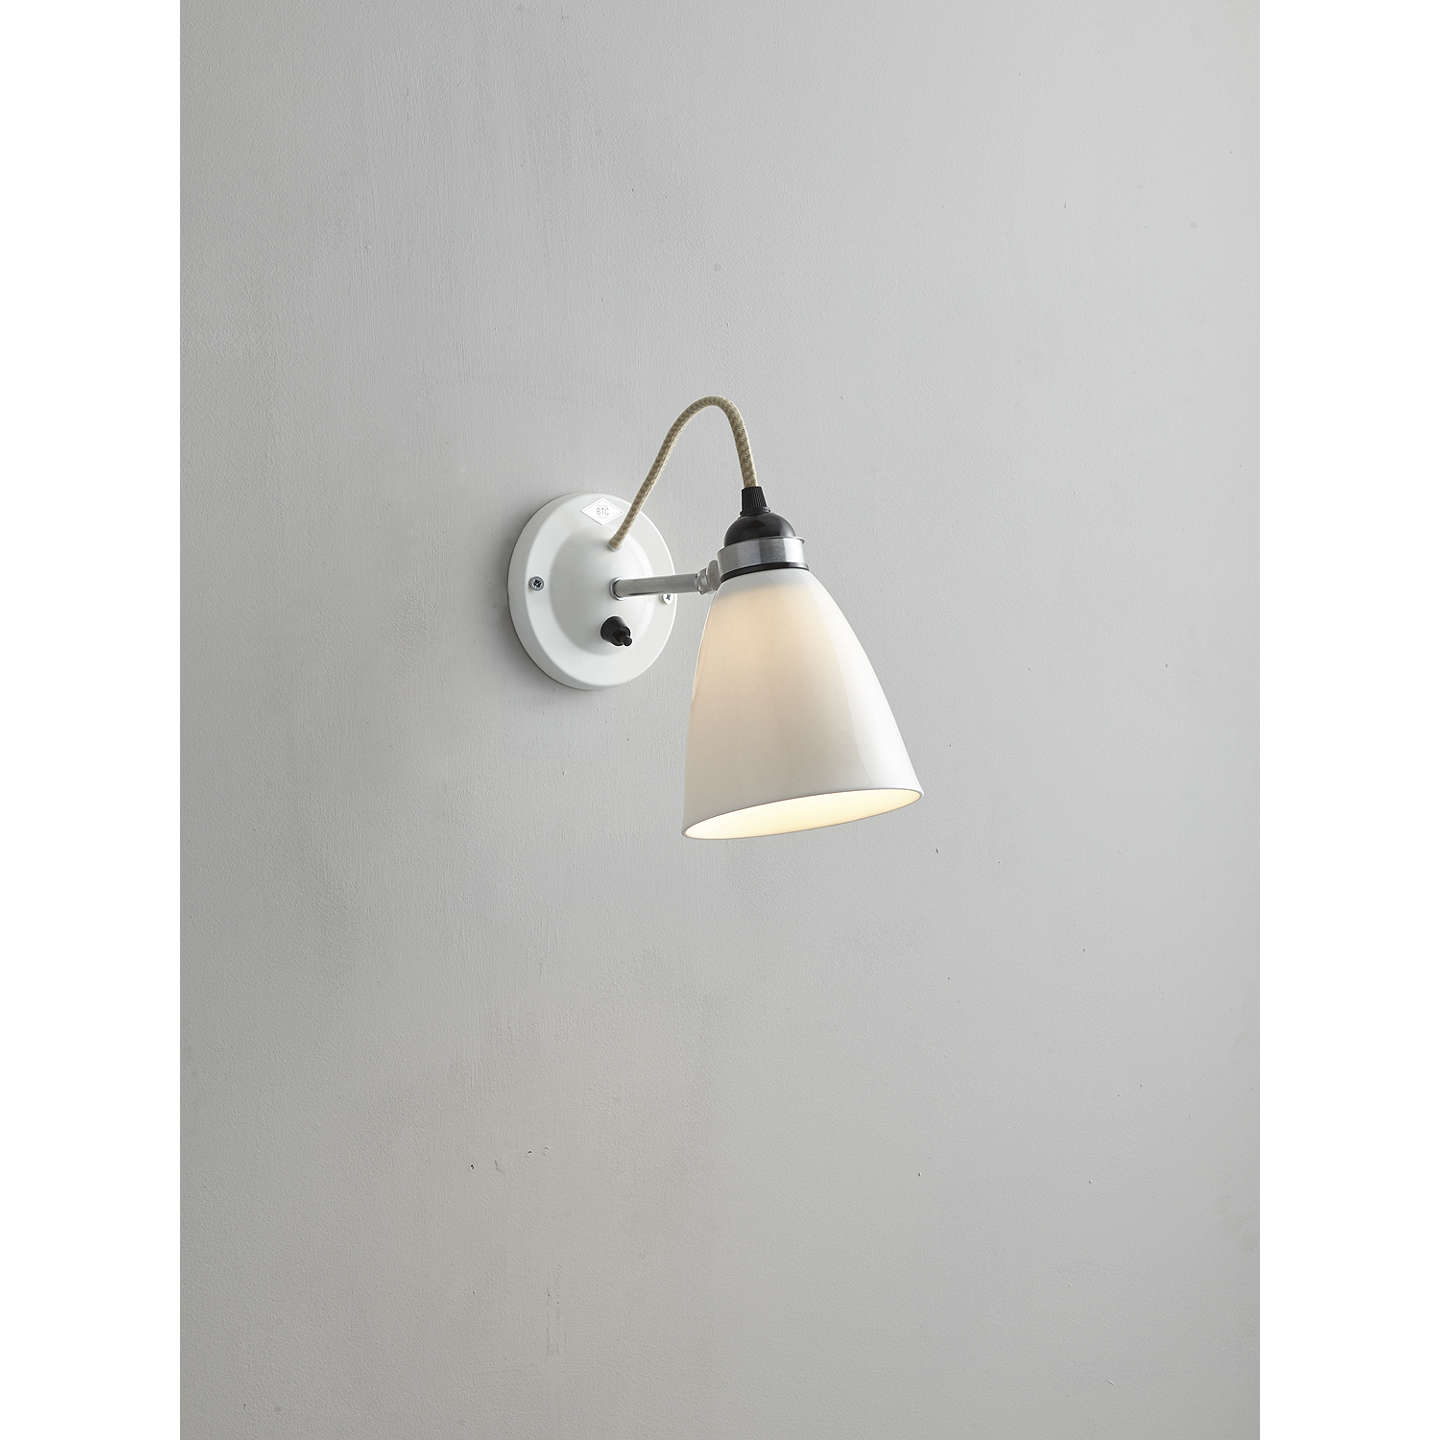 Original btc hector dome switched wall light medium natural white buyoriginal btc hector dome switched wall light medium natural white online at johnlewis aloadofball Gallery